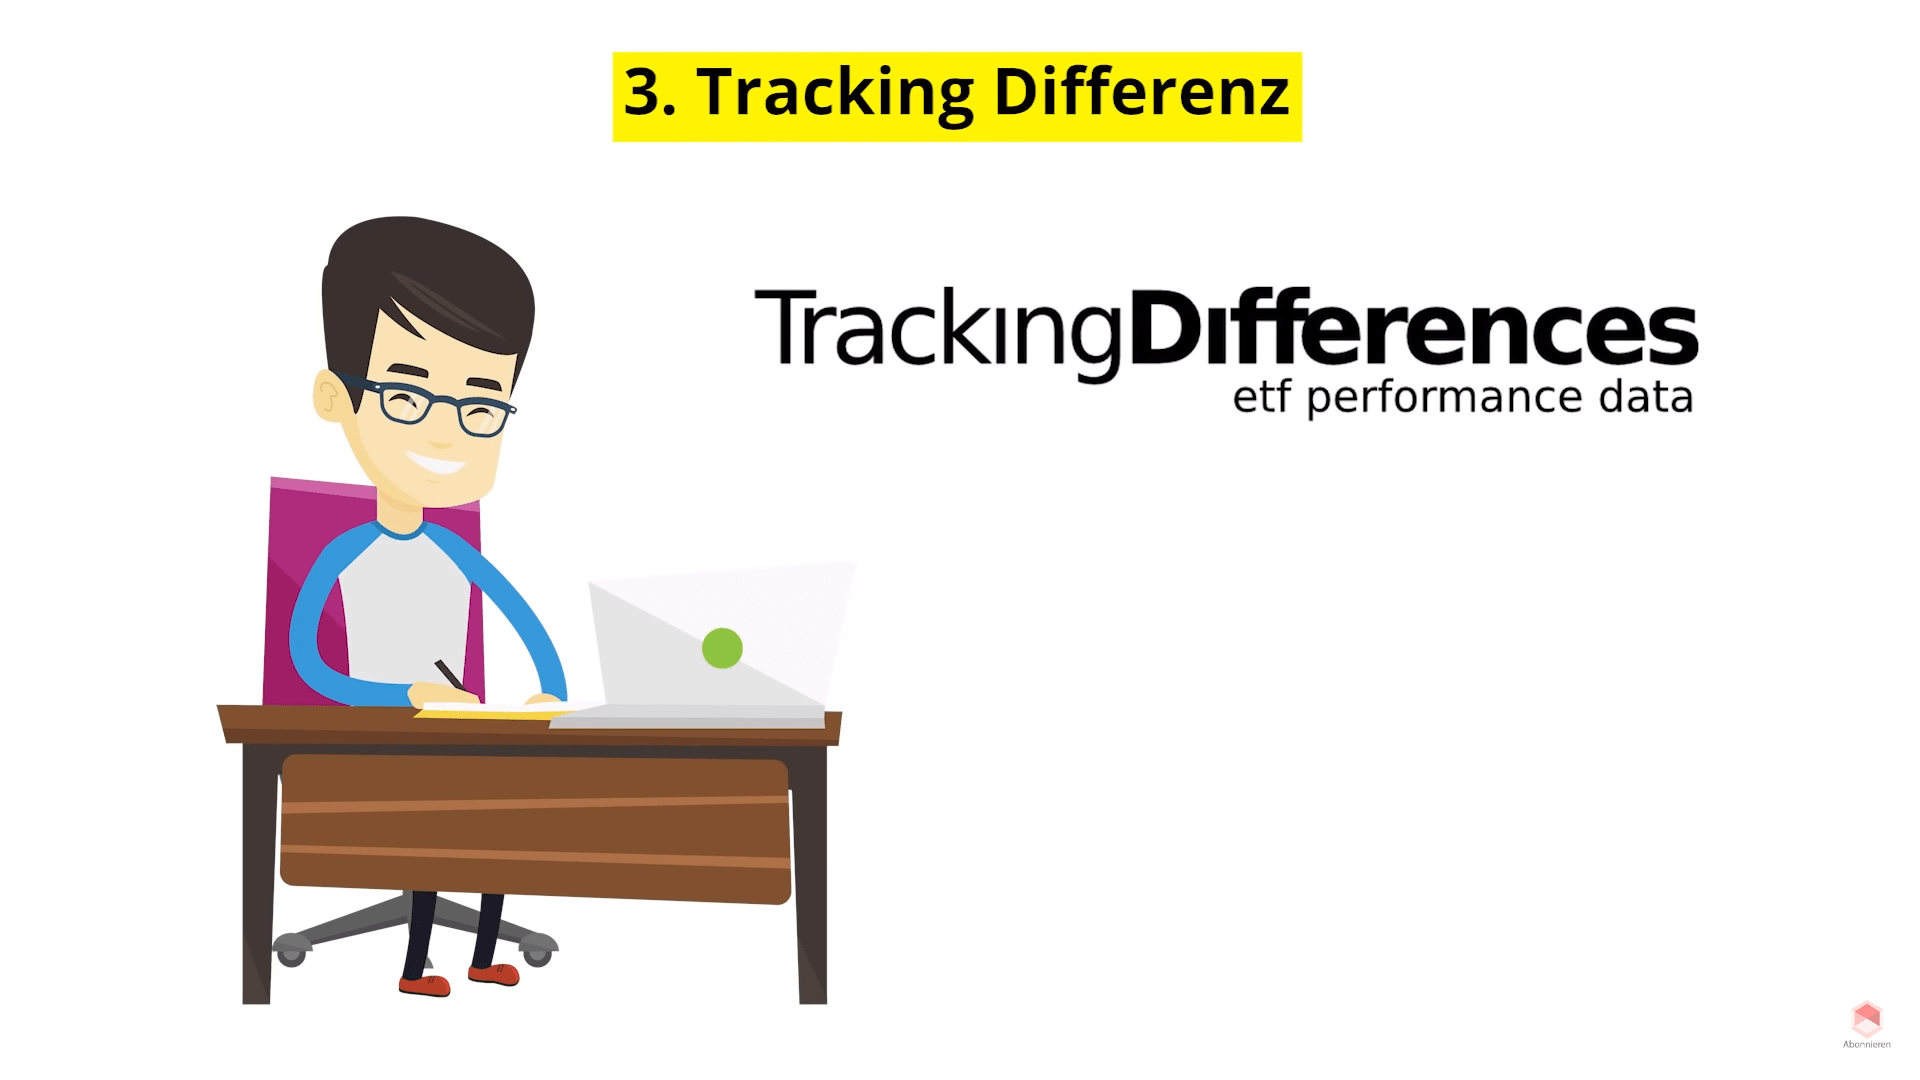 trackingdifferenz